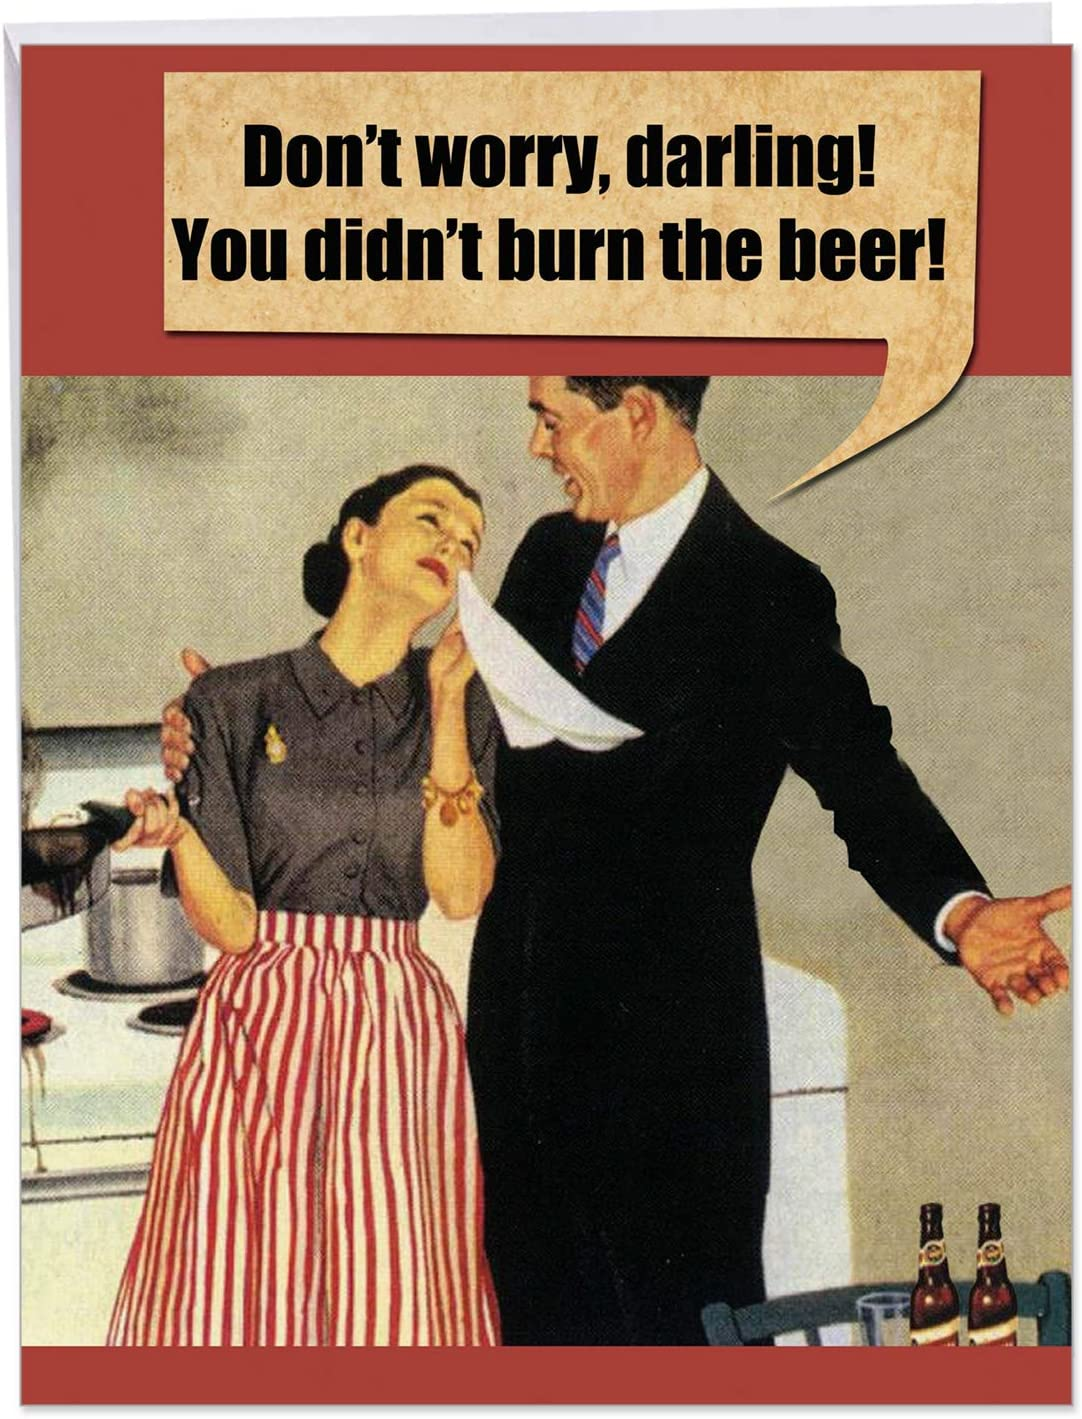 Jumbo Burn the Beer Birthday Card' Greeting Card w/ Envelope 8.5 x 11 Inch - Classic, Vintage Inspired - Husband and Wife - Kitchen Burn, Fail - Stationery Set for Personalized Happy Bday Gift J9700 : Office Products